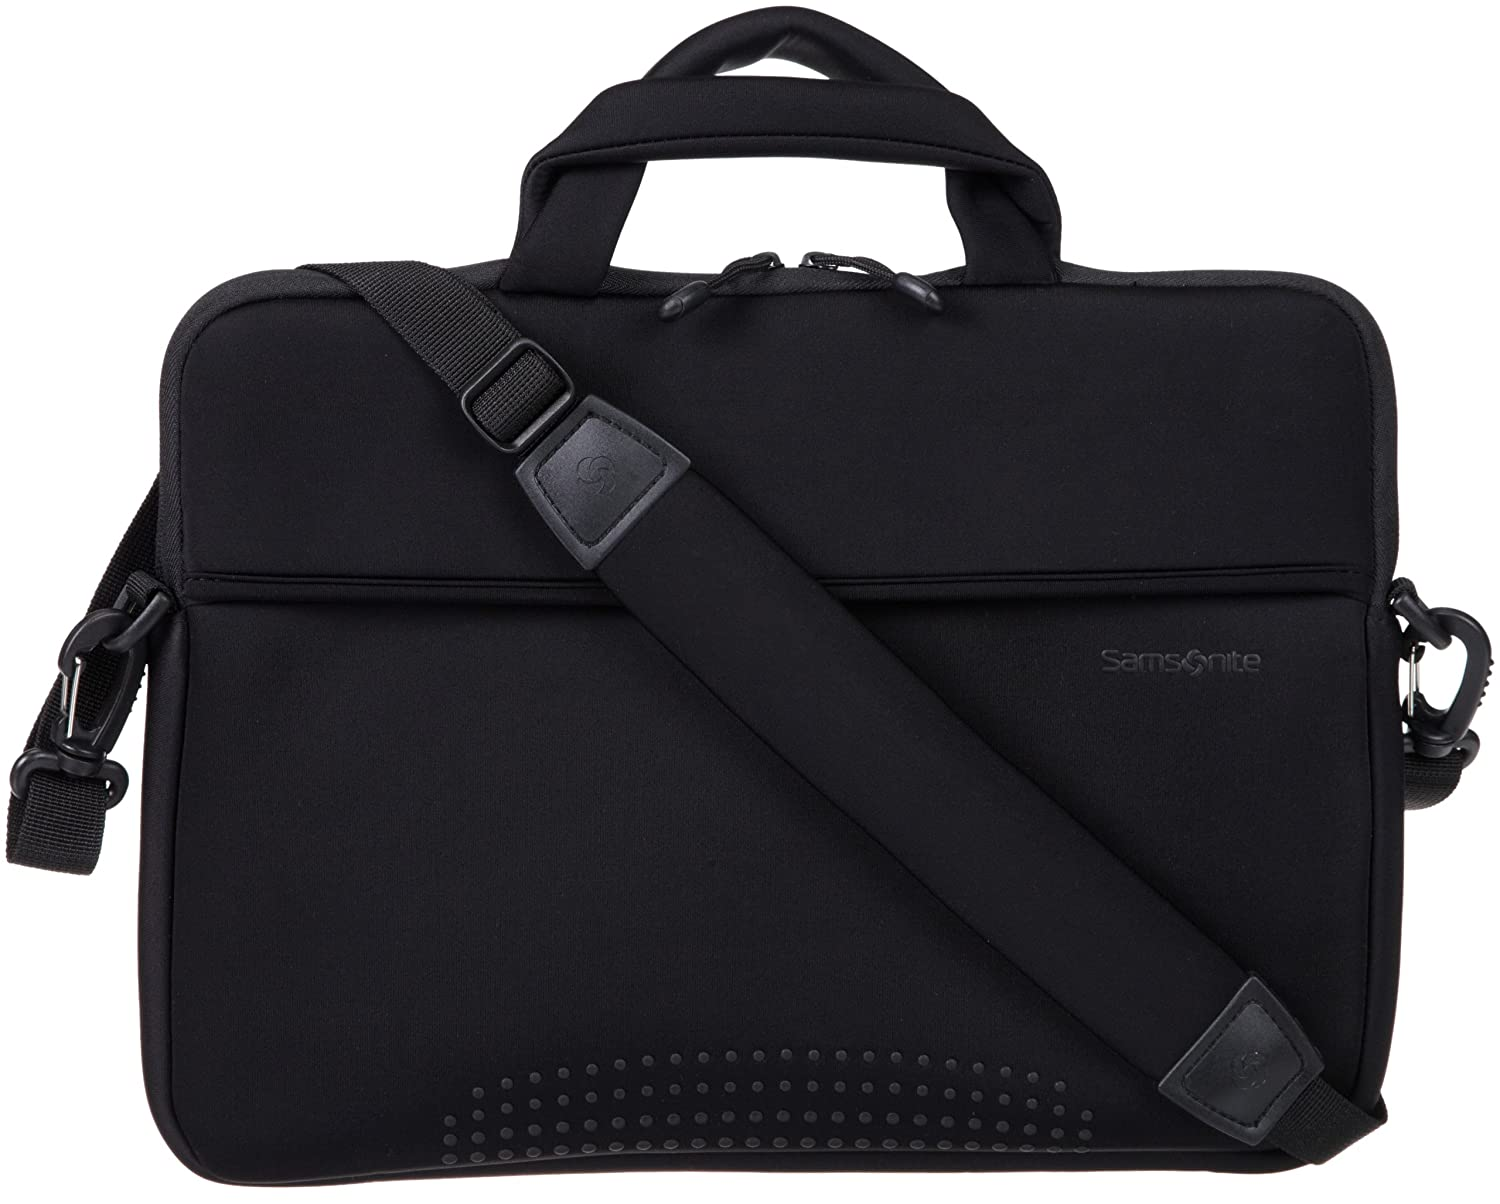 Samsonite Aramon2 Shuttle Shoulder Bag (Black) For 17 Inch Laptop 112